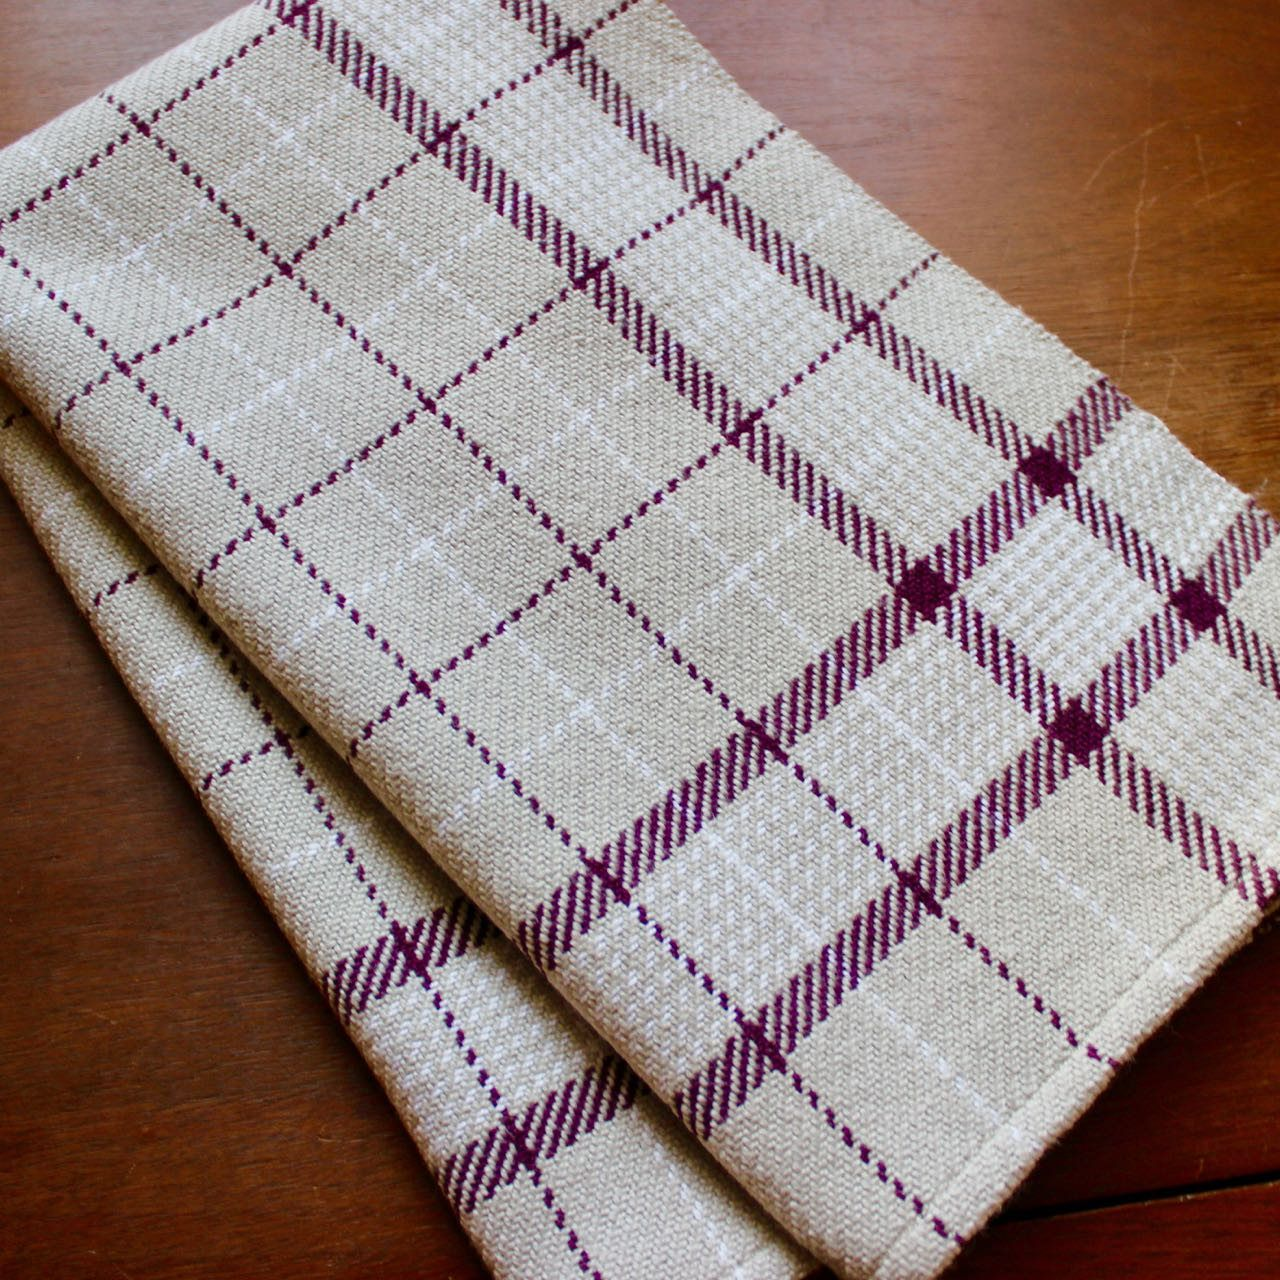 Kitchen Towel Handwoven Dish Hand Woven Cotton Plum Purple Gray